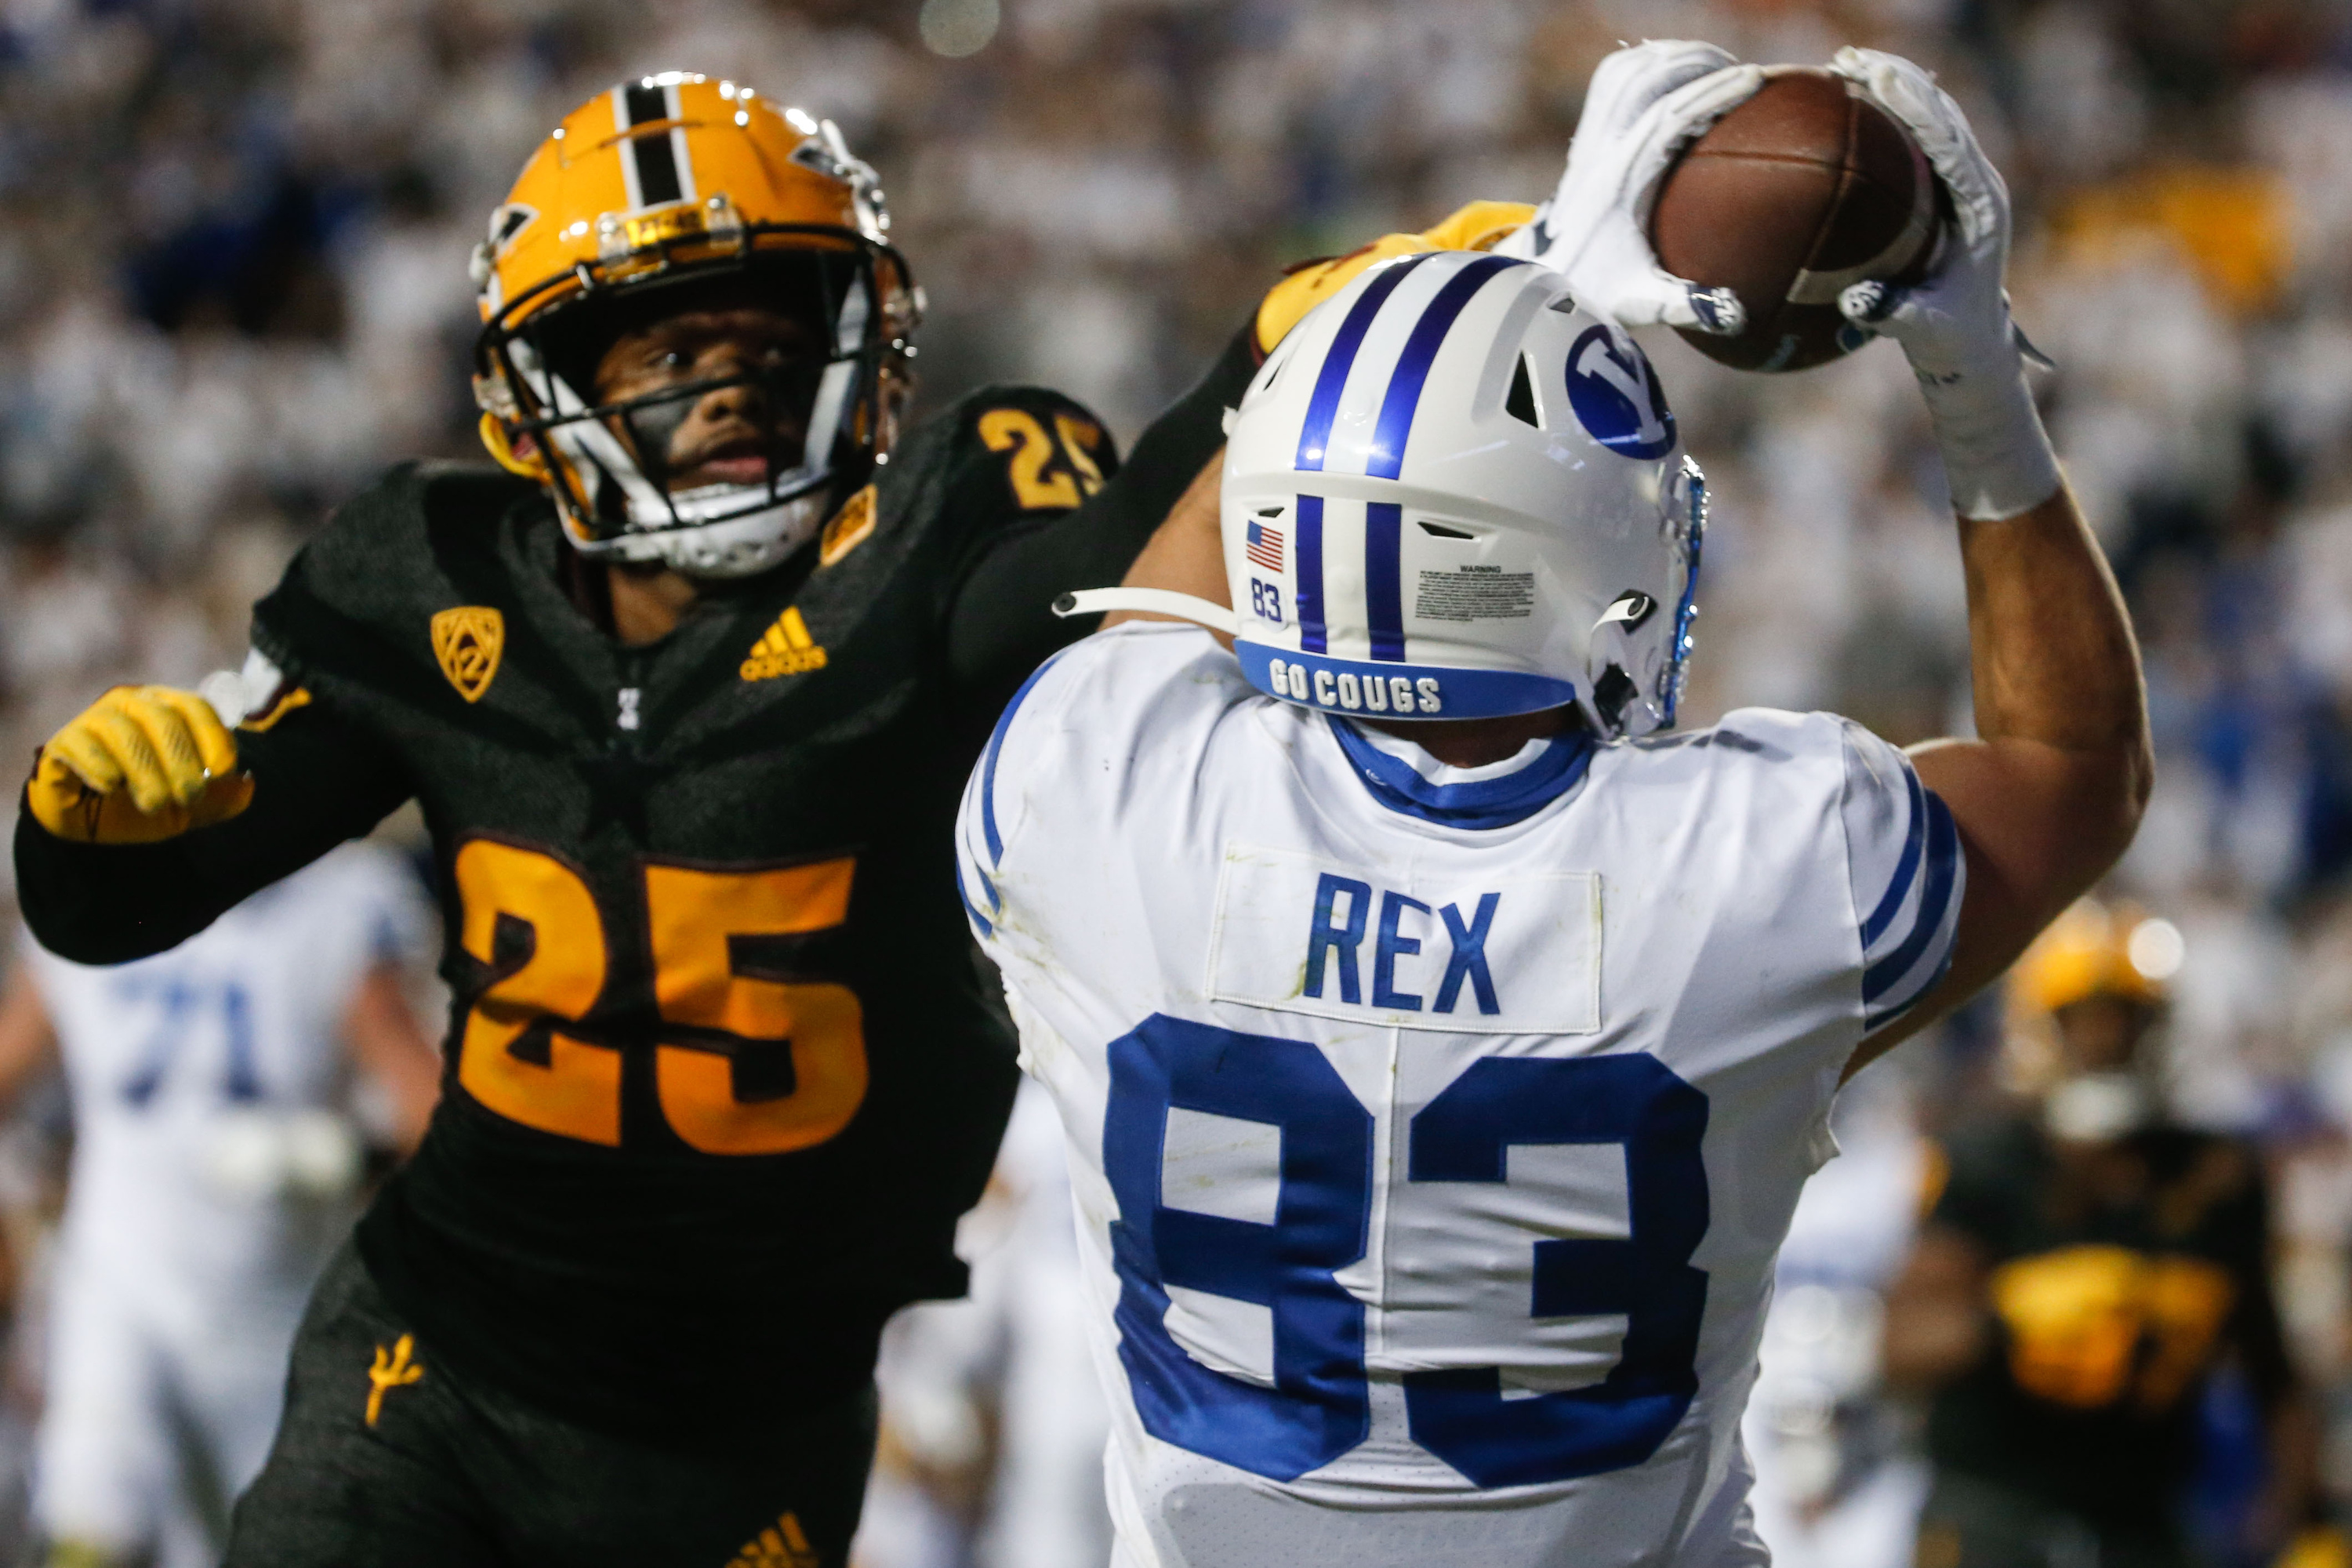 Brigham Young tight end Isaac Rex (83) receives the ball for a touchdown as Arizona State defensive back Macen Williams (25) tries to defend during an NCAA college football game at LaVell Edwards Stadium in Provo on Saturday, Sept. 18, 2021.